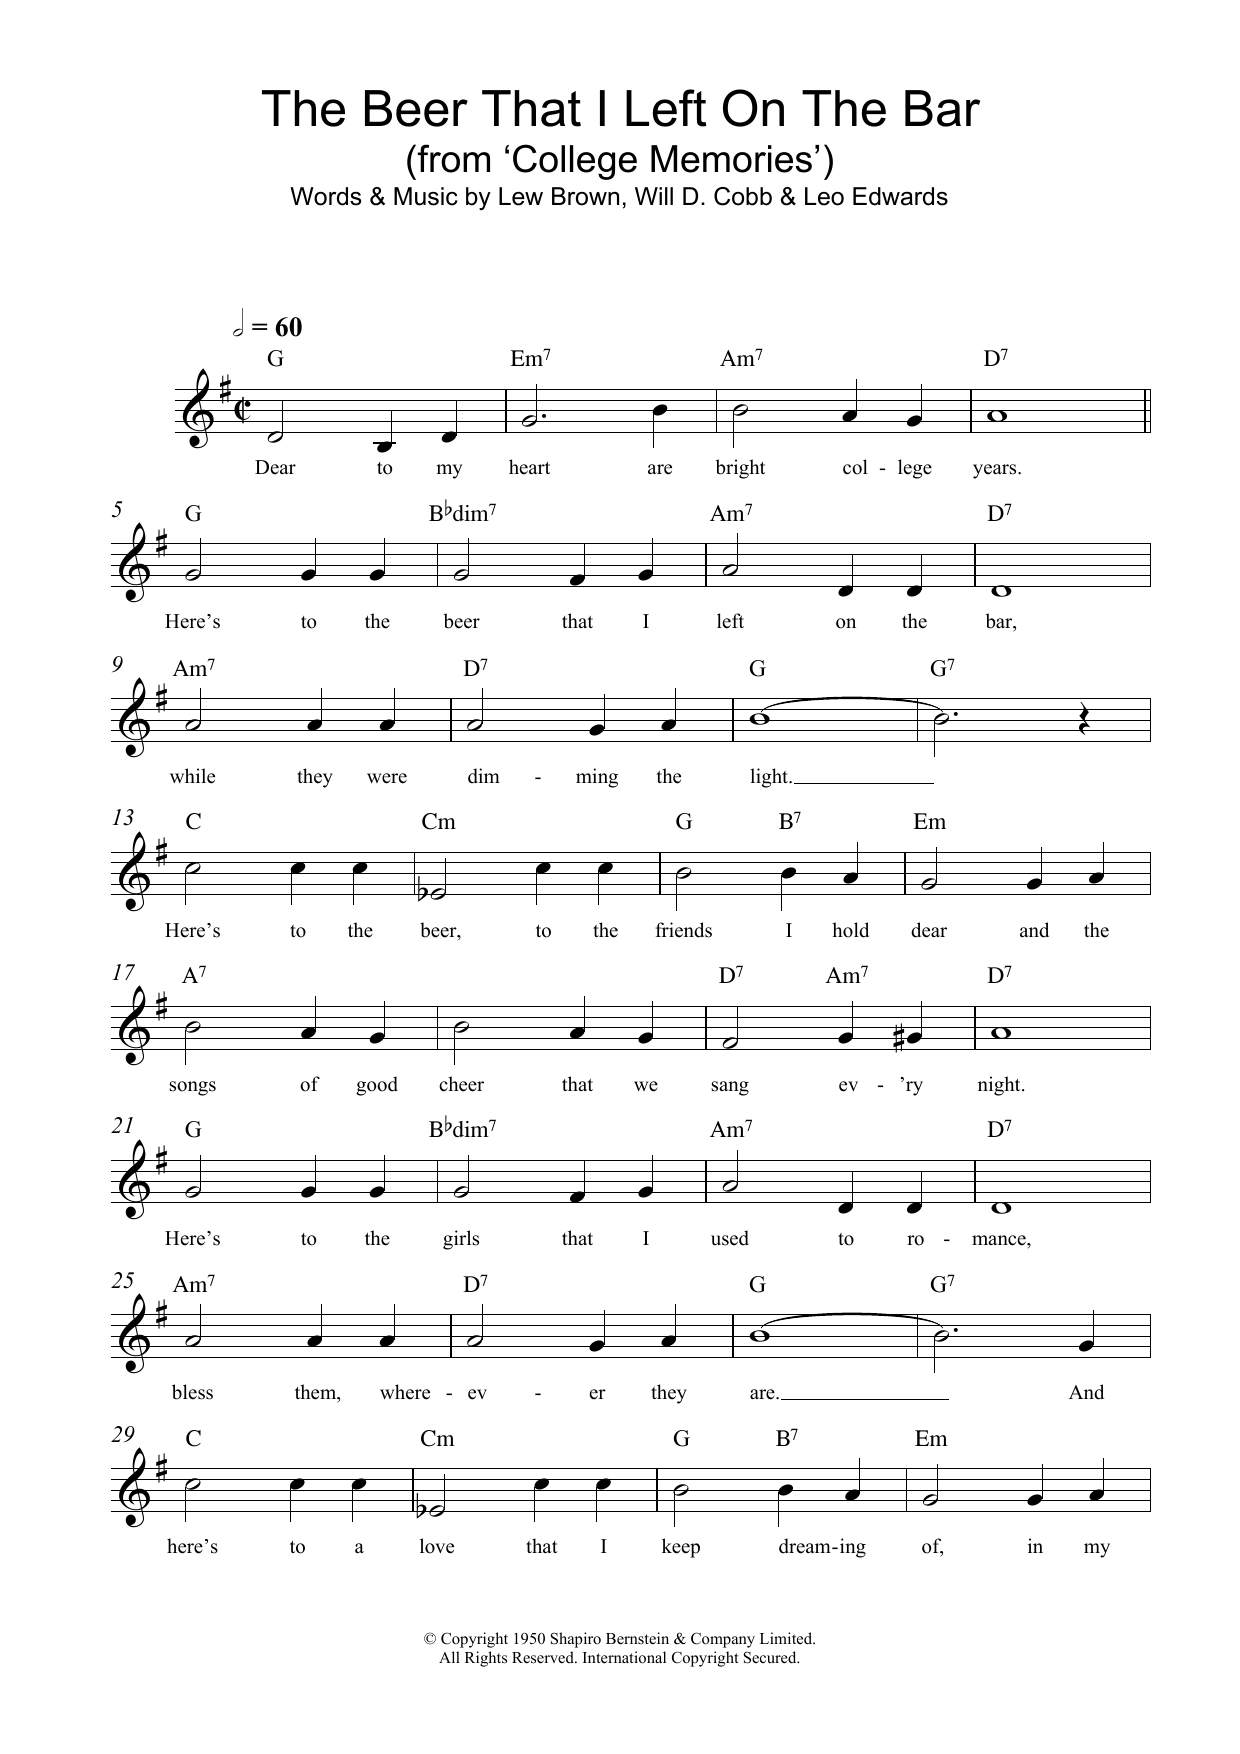 The Beer That I Left On The Bar (College Memories) Sheet Music